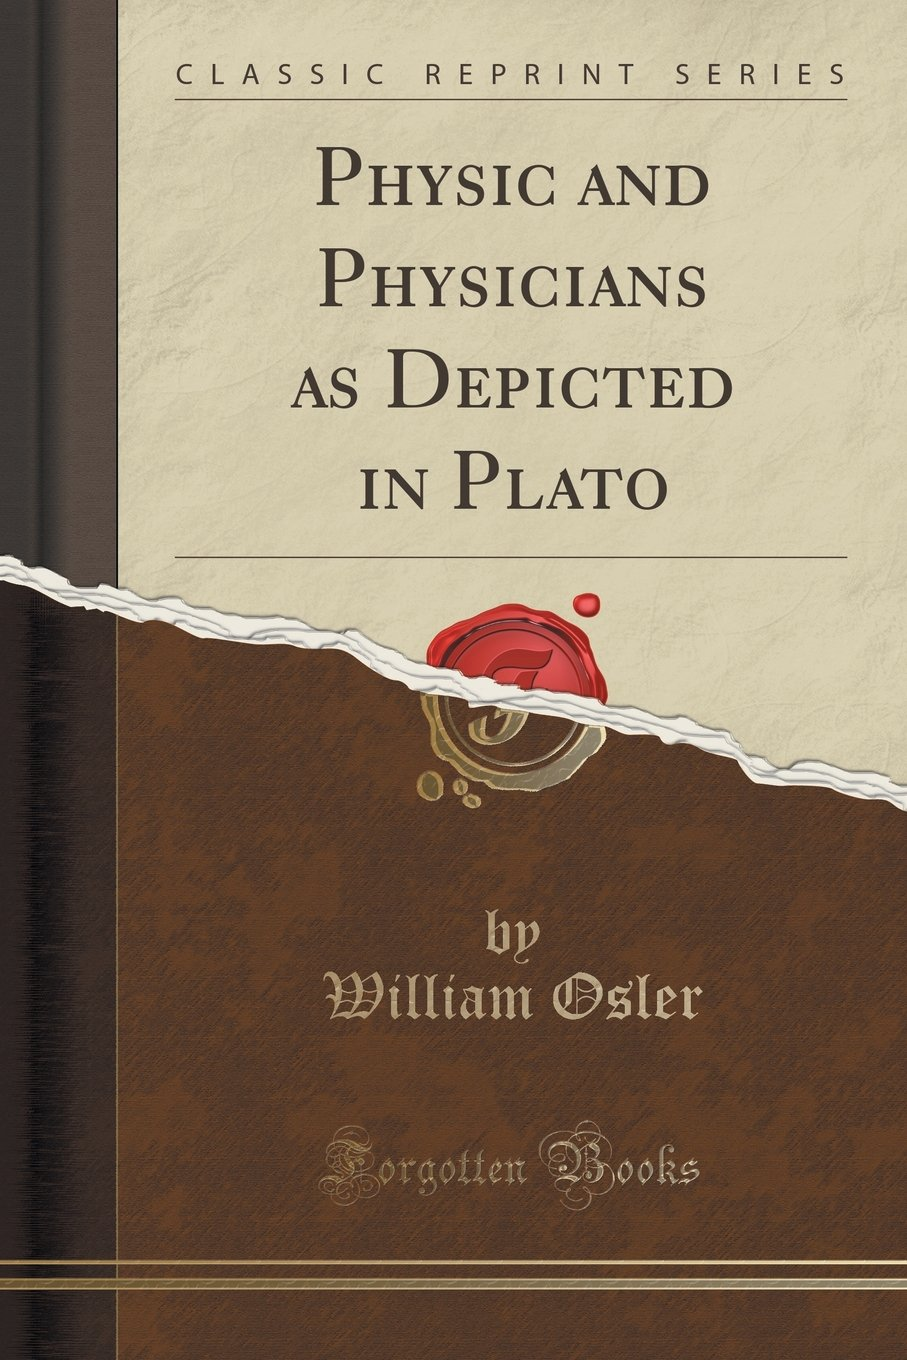 Physic and Physicians as Depicted in Plato (Classic Reprint) PDF